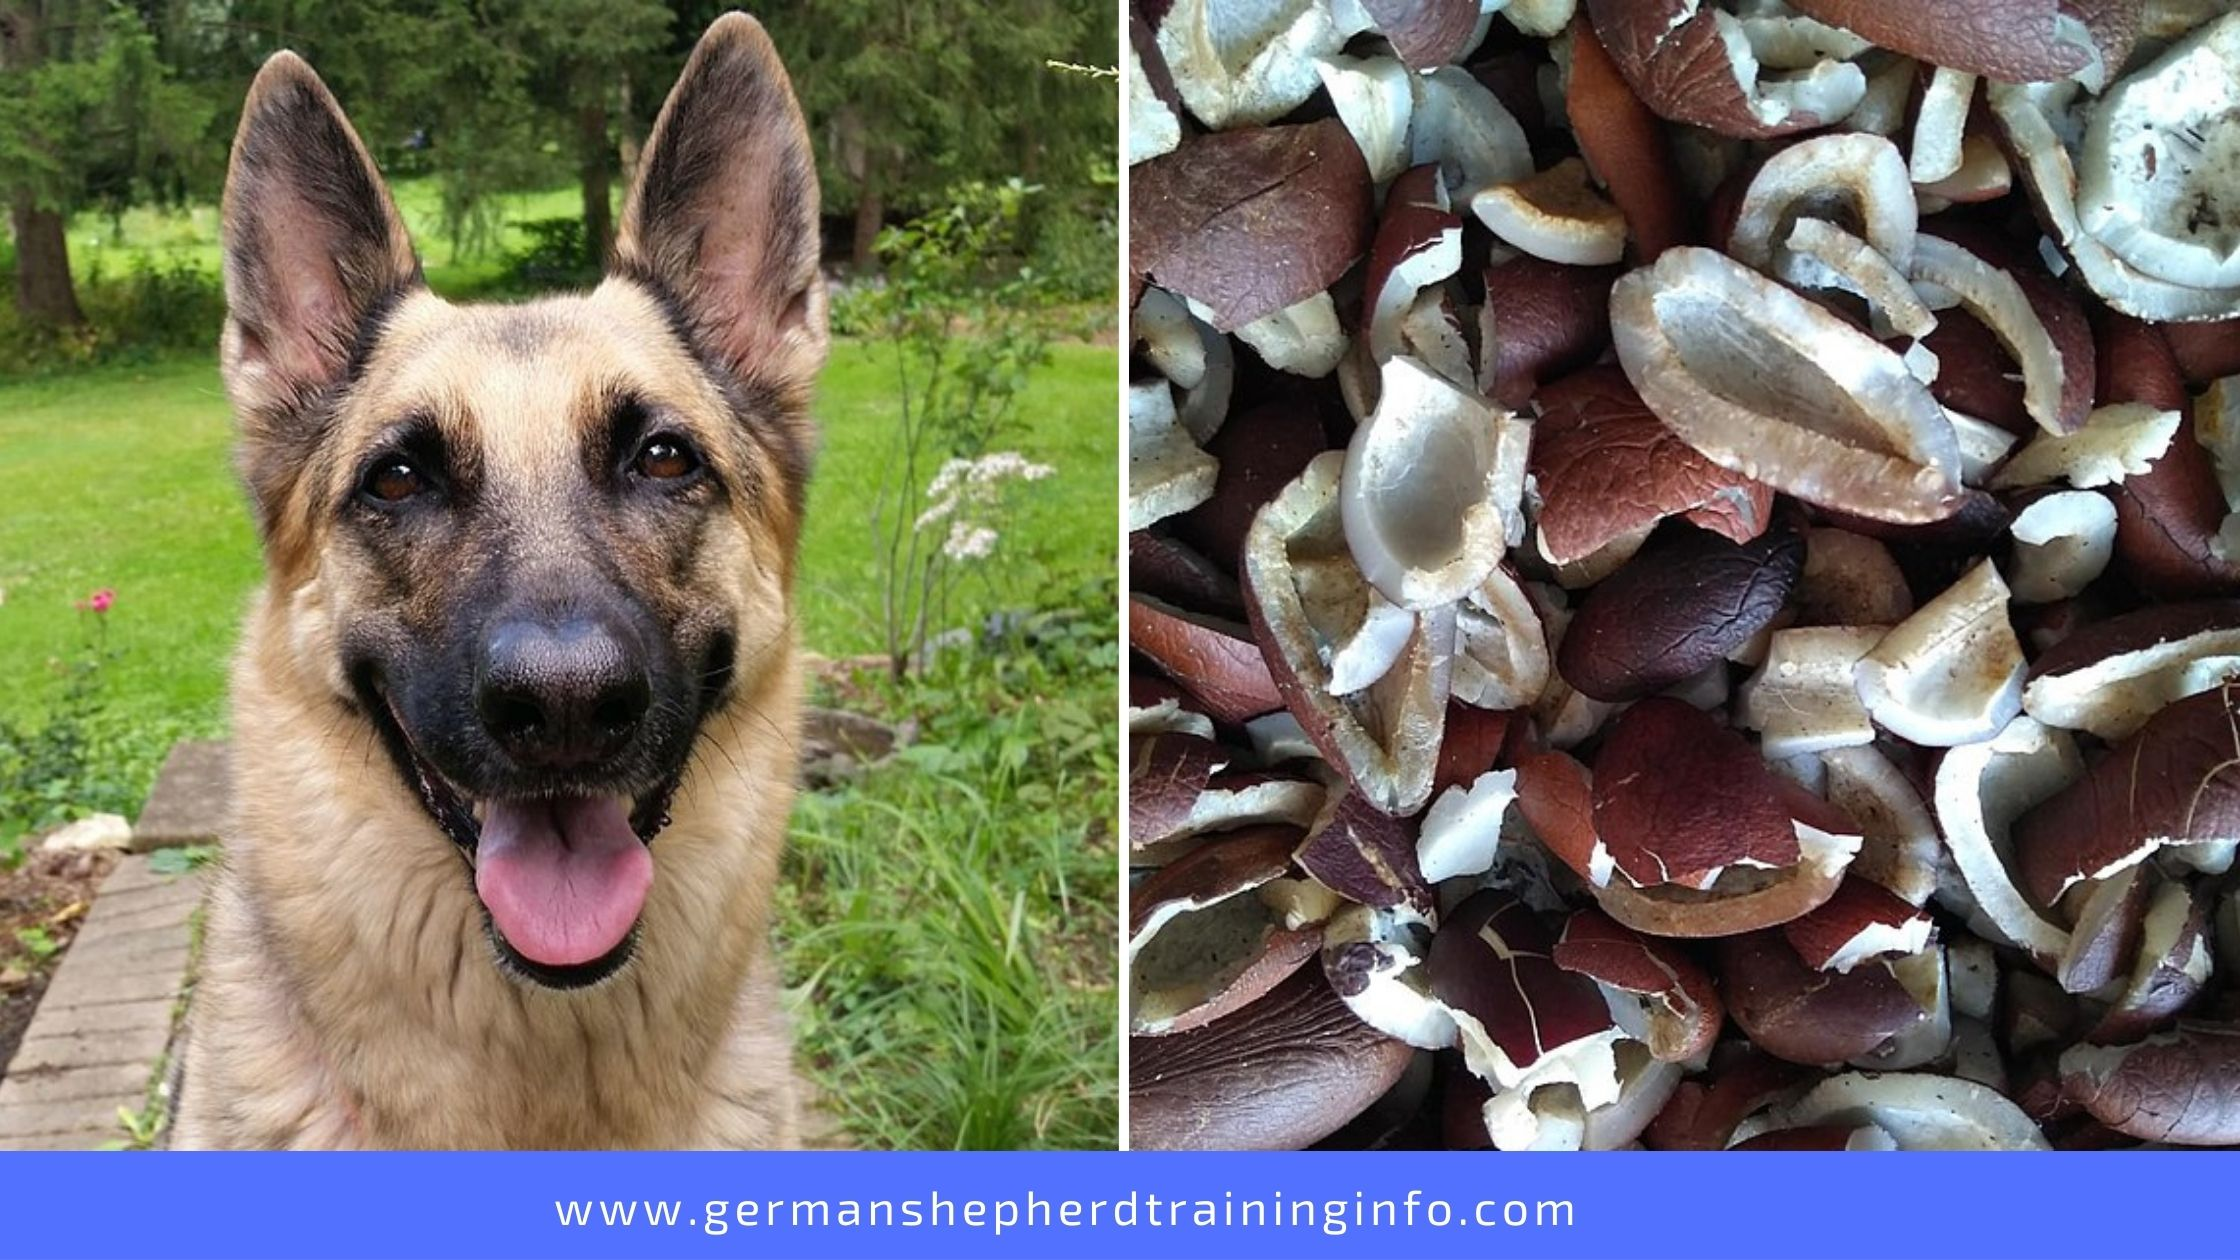 Can Dogs Eat Dried Coconut?